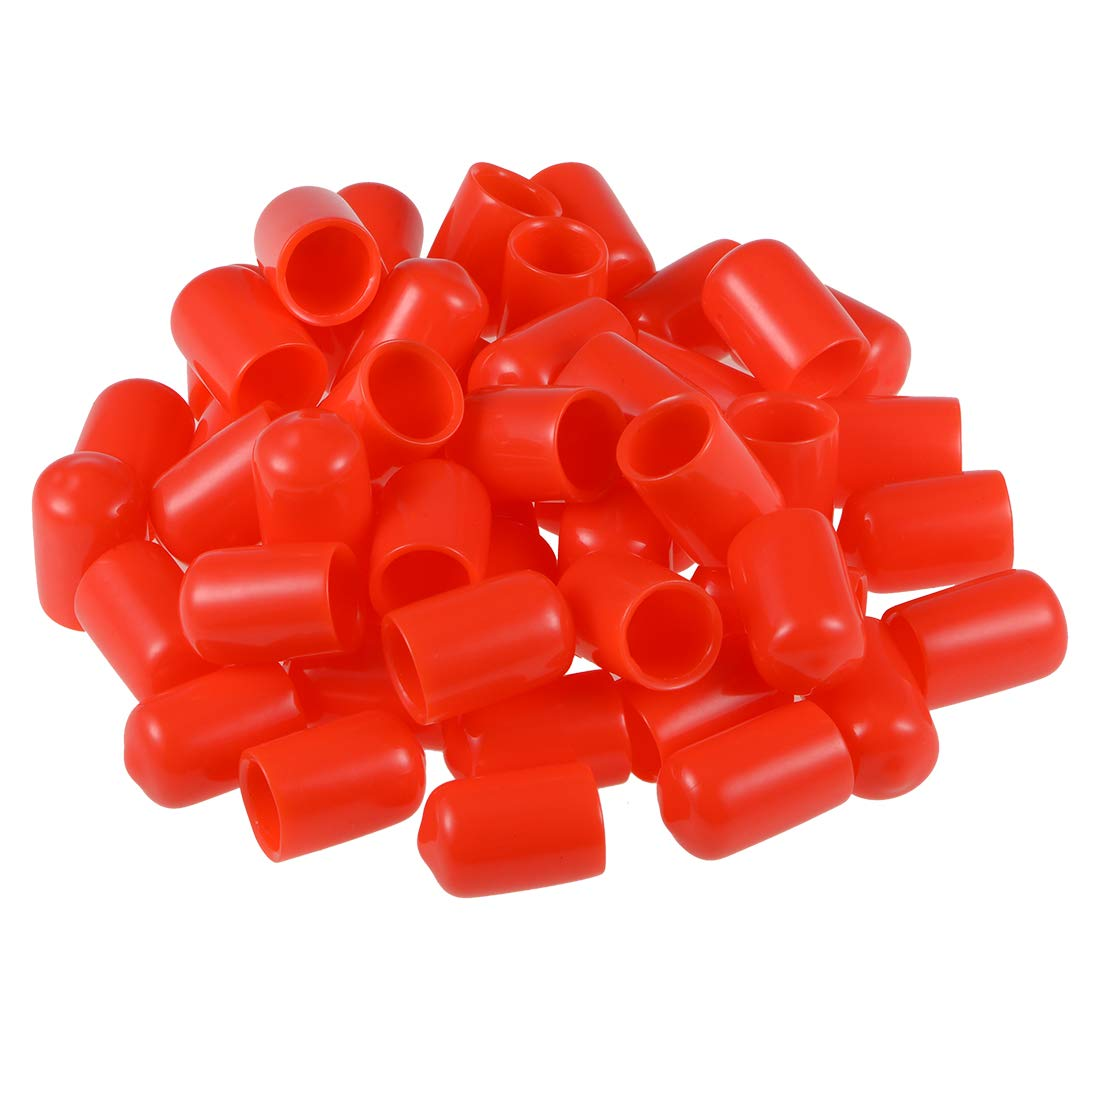 uxcell Screw Thread Protectors 9//16-inch ID Round End Cap Cover Flexible Red Tube Caps 50pcs